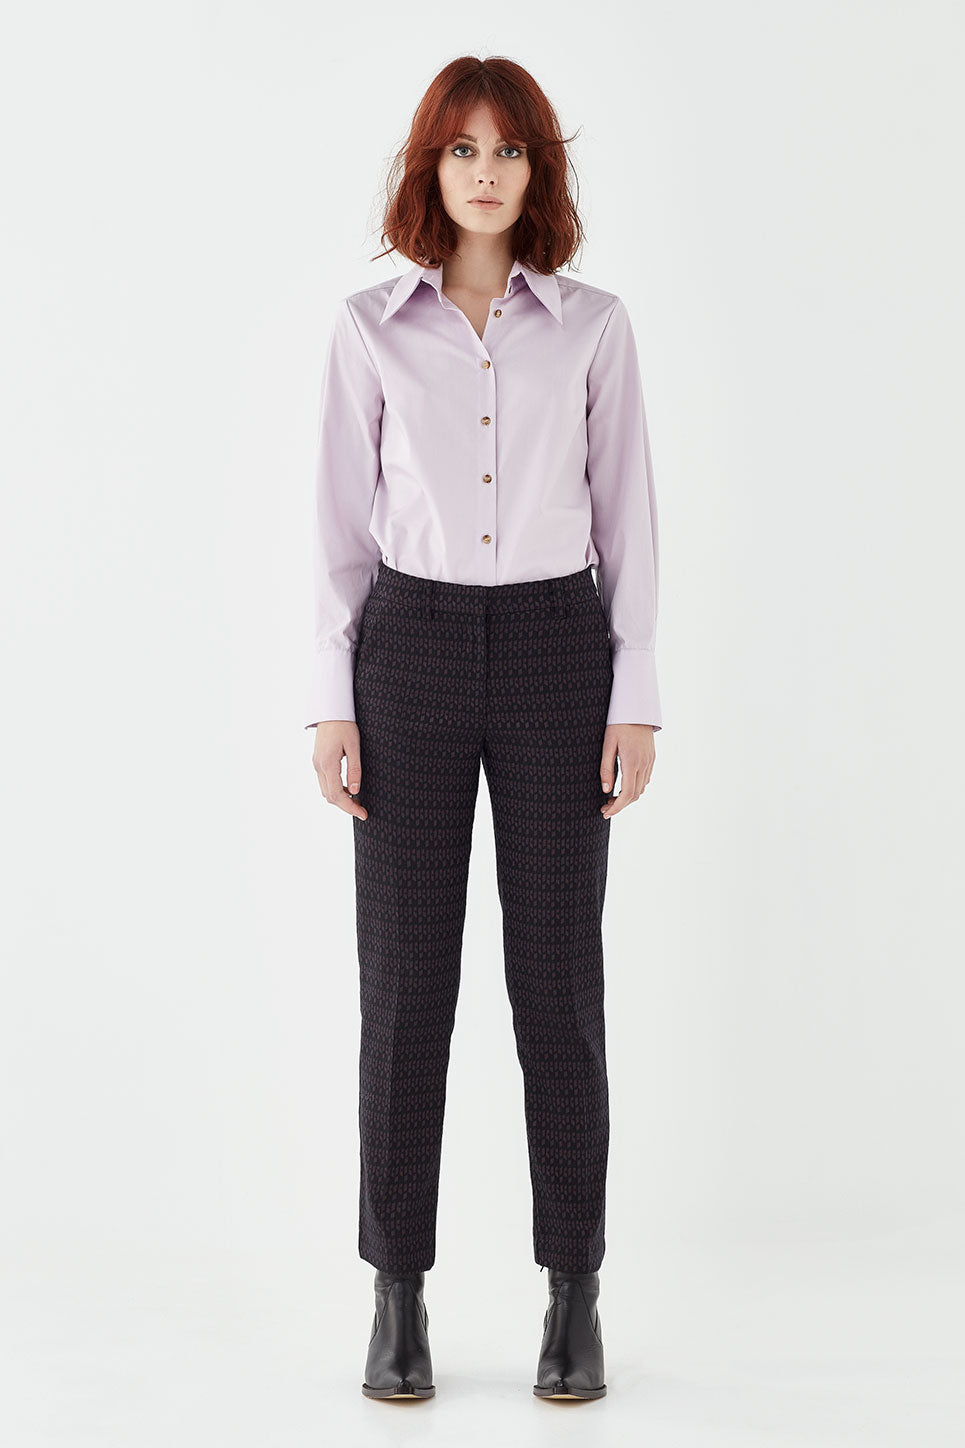 The Marlon Trouser in Jacquard